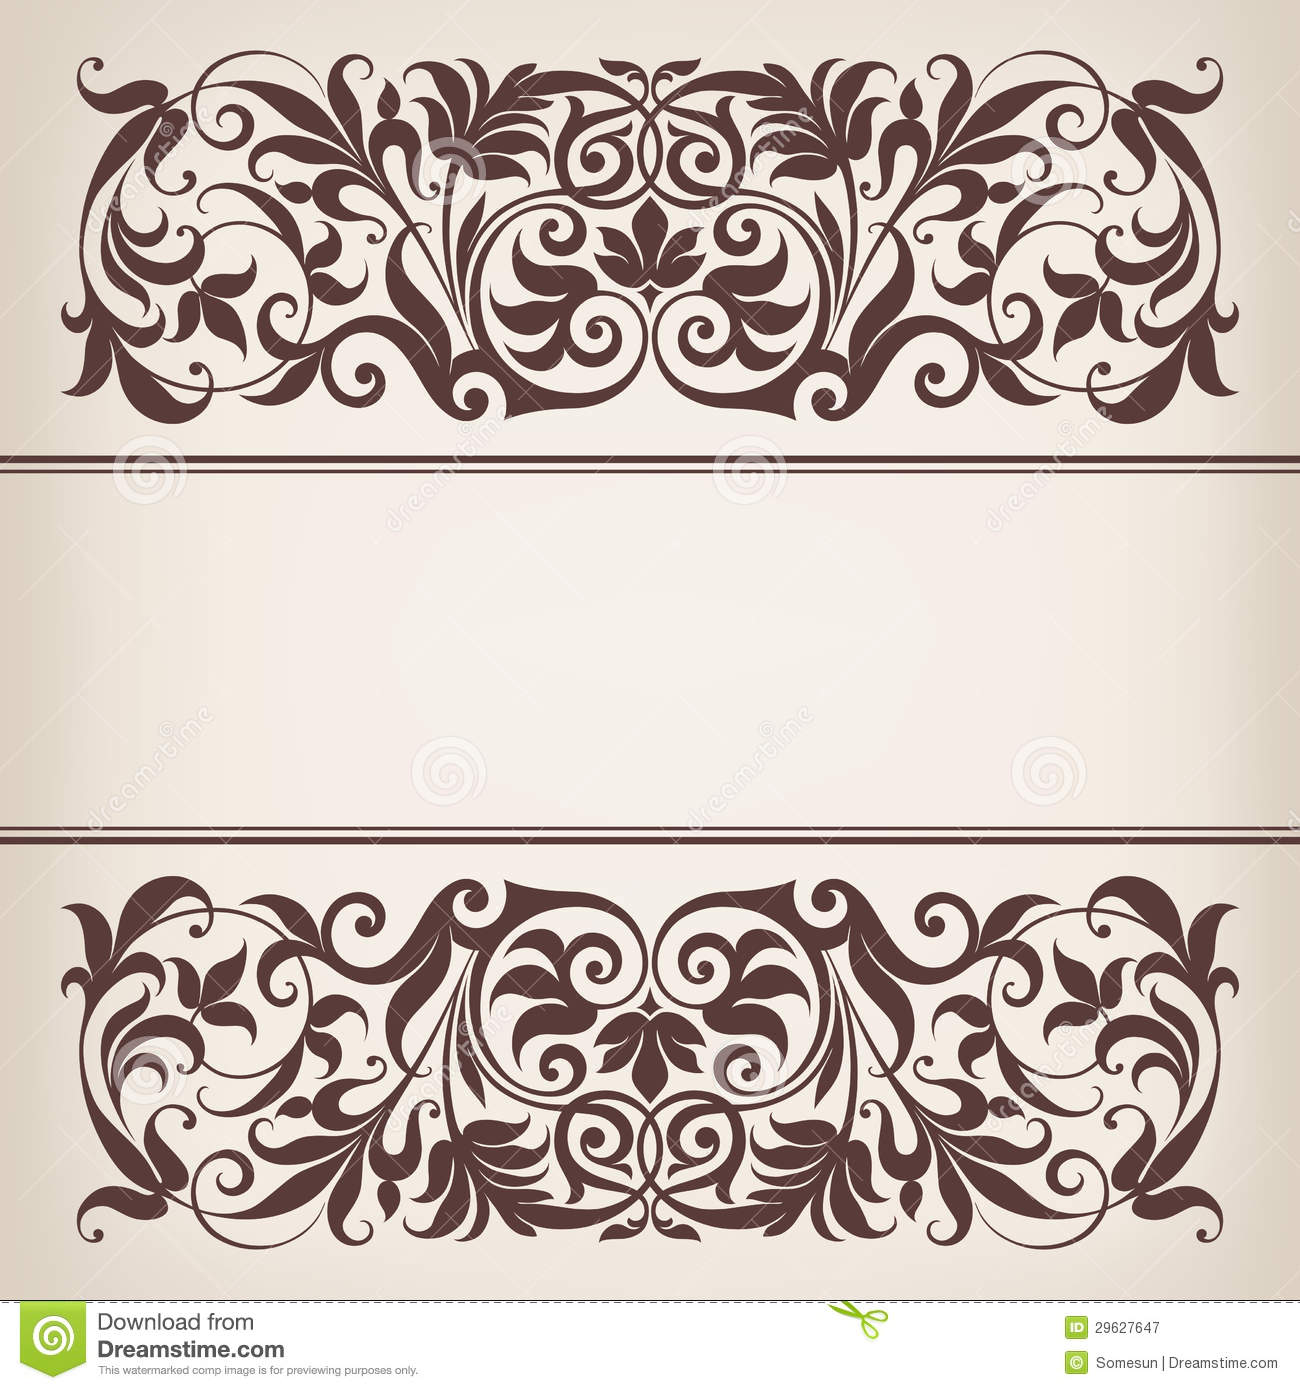 18 Vintage Vector Border Images Free Vector Calligraphic